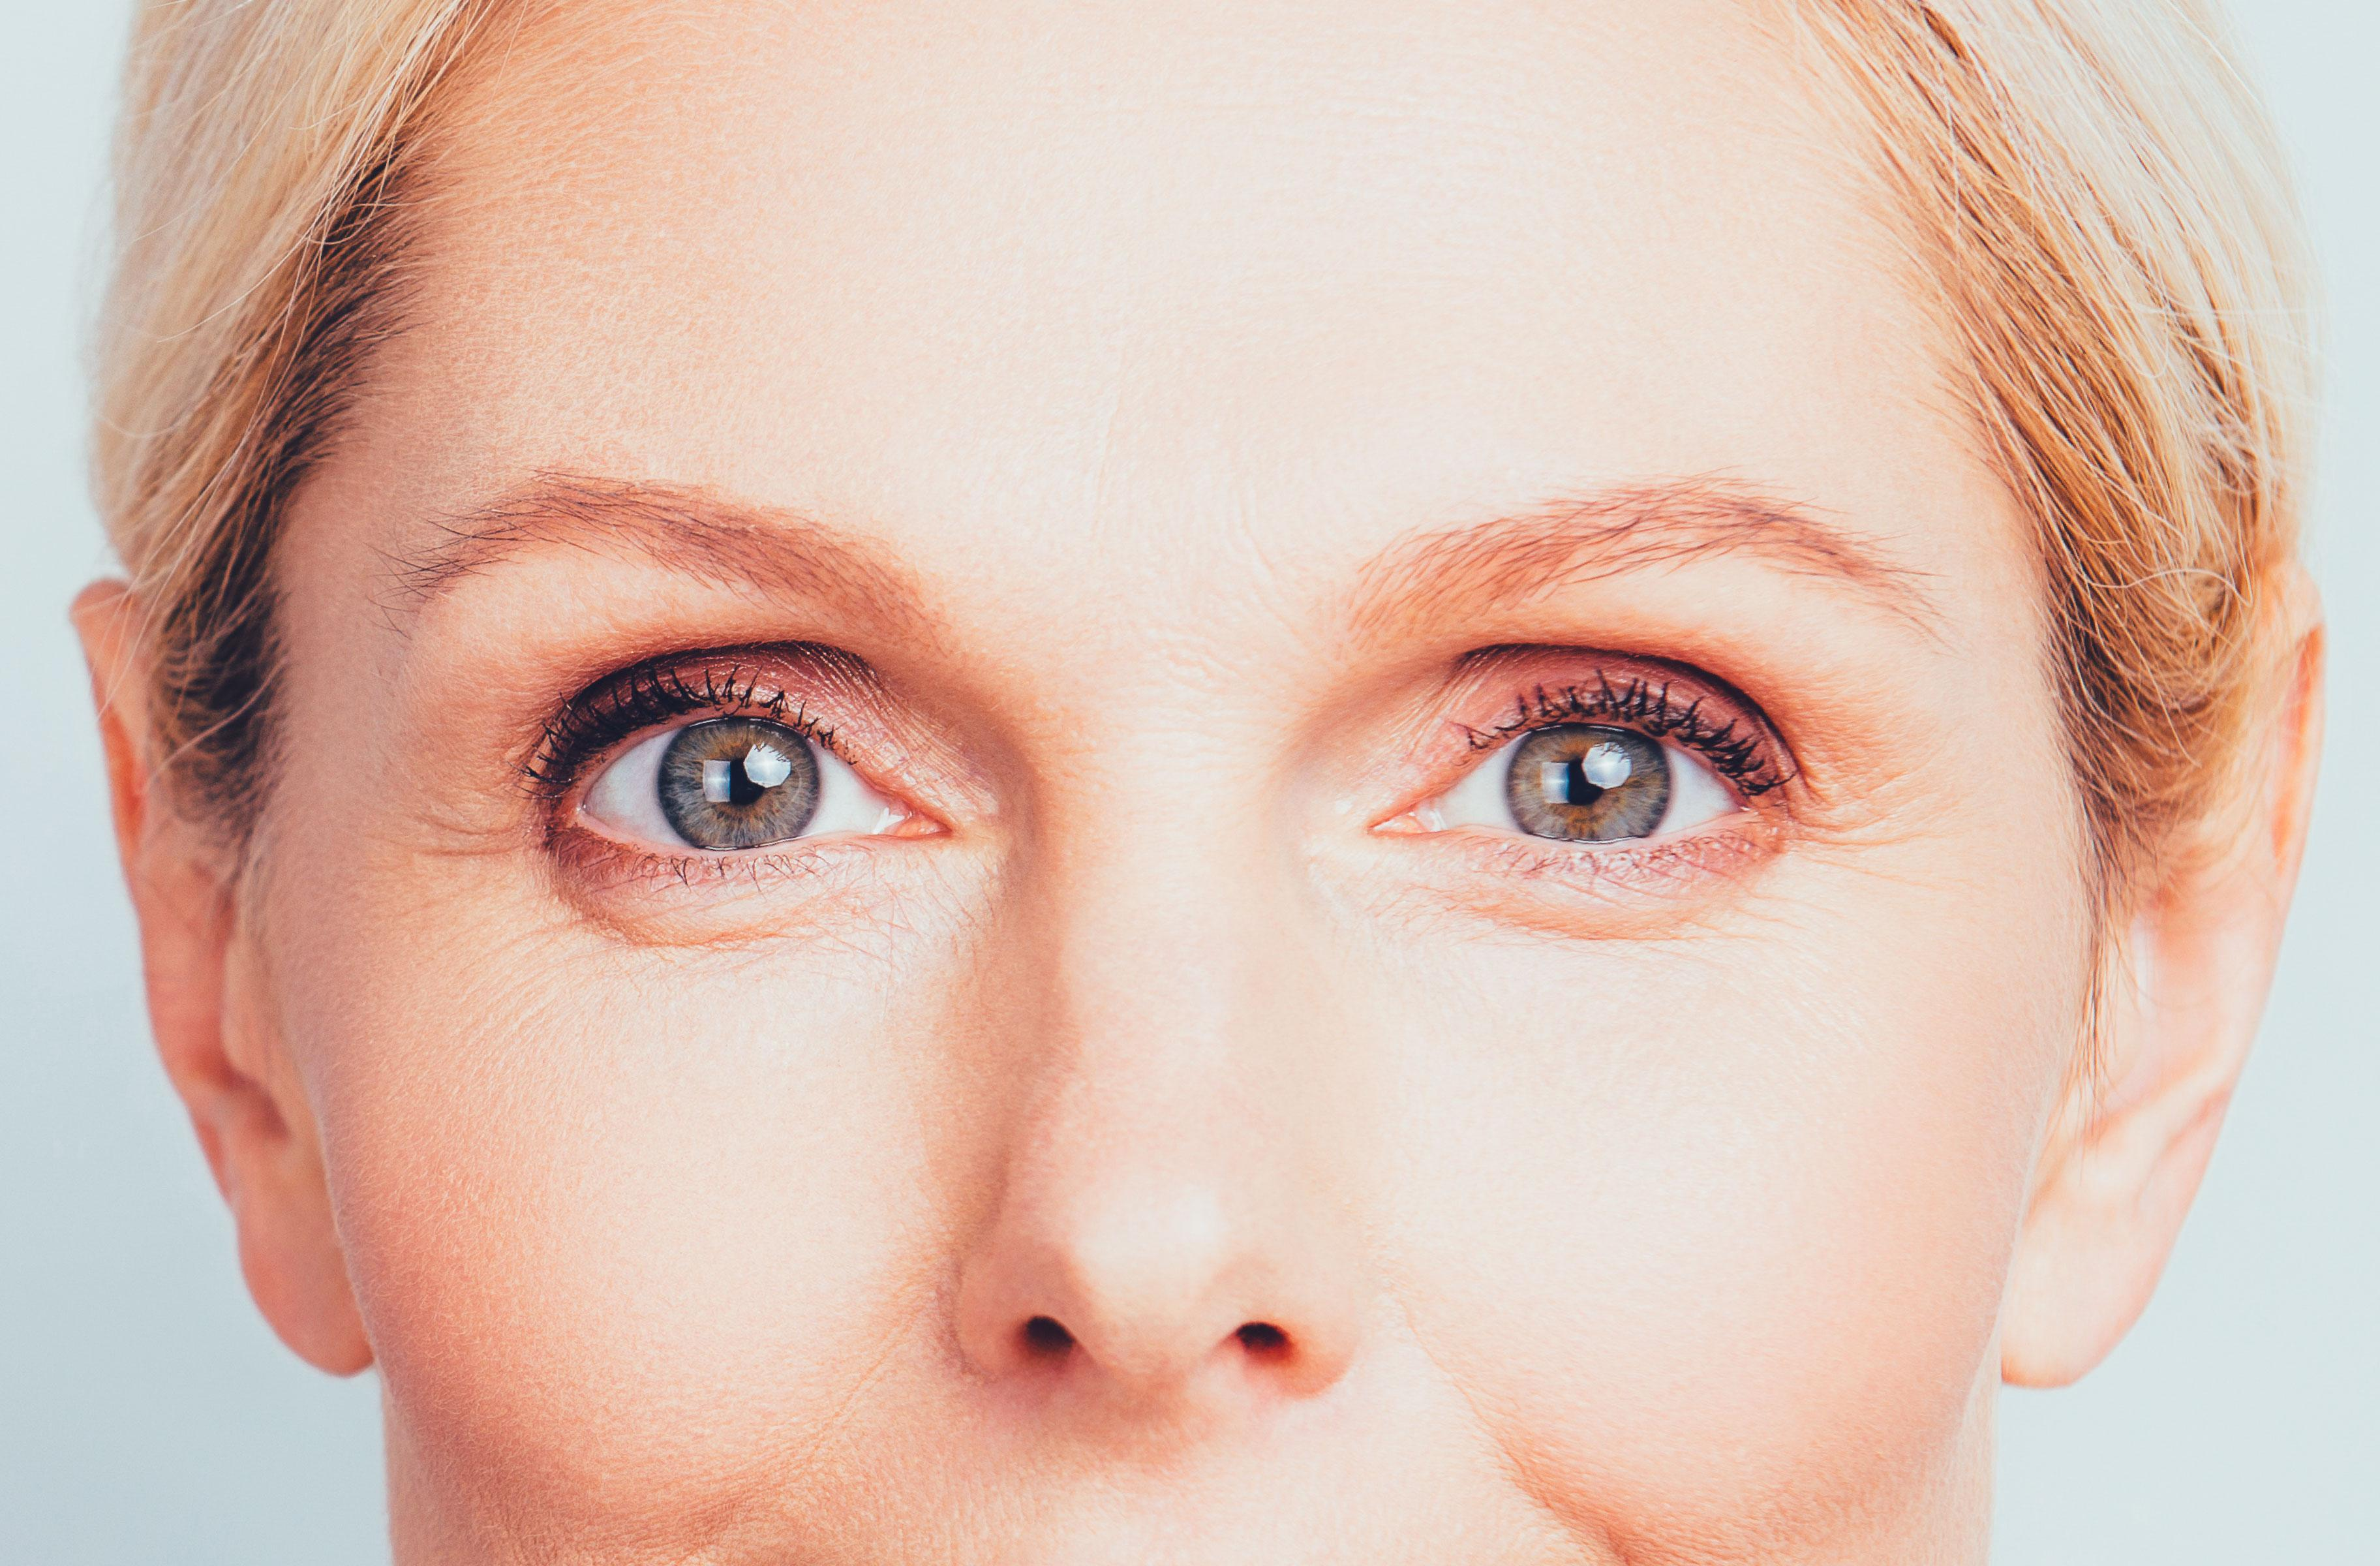 A blue-eyed woman is staring deeply